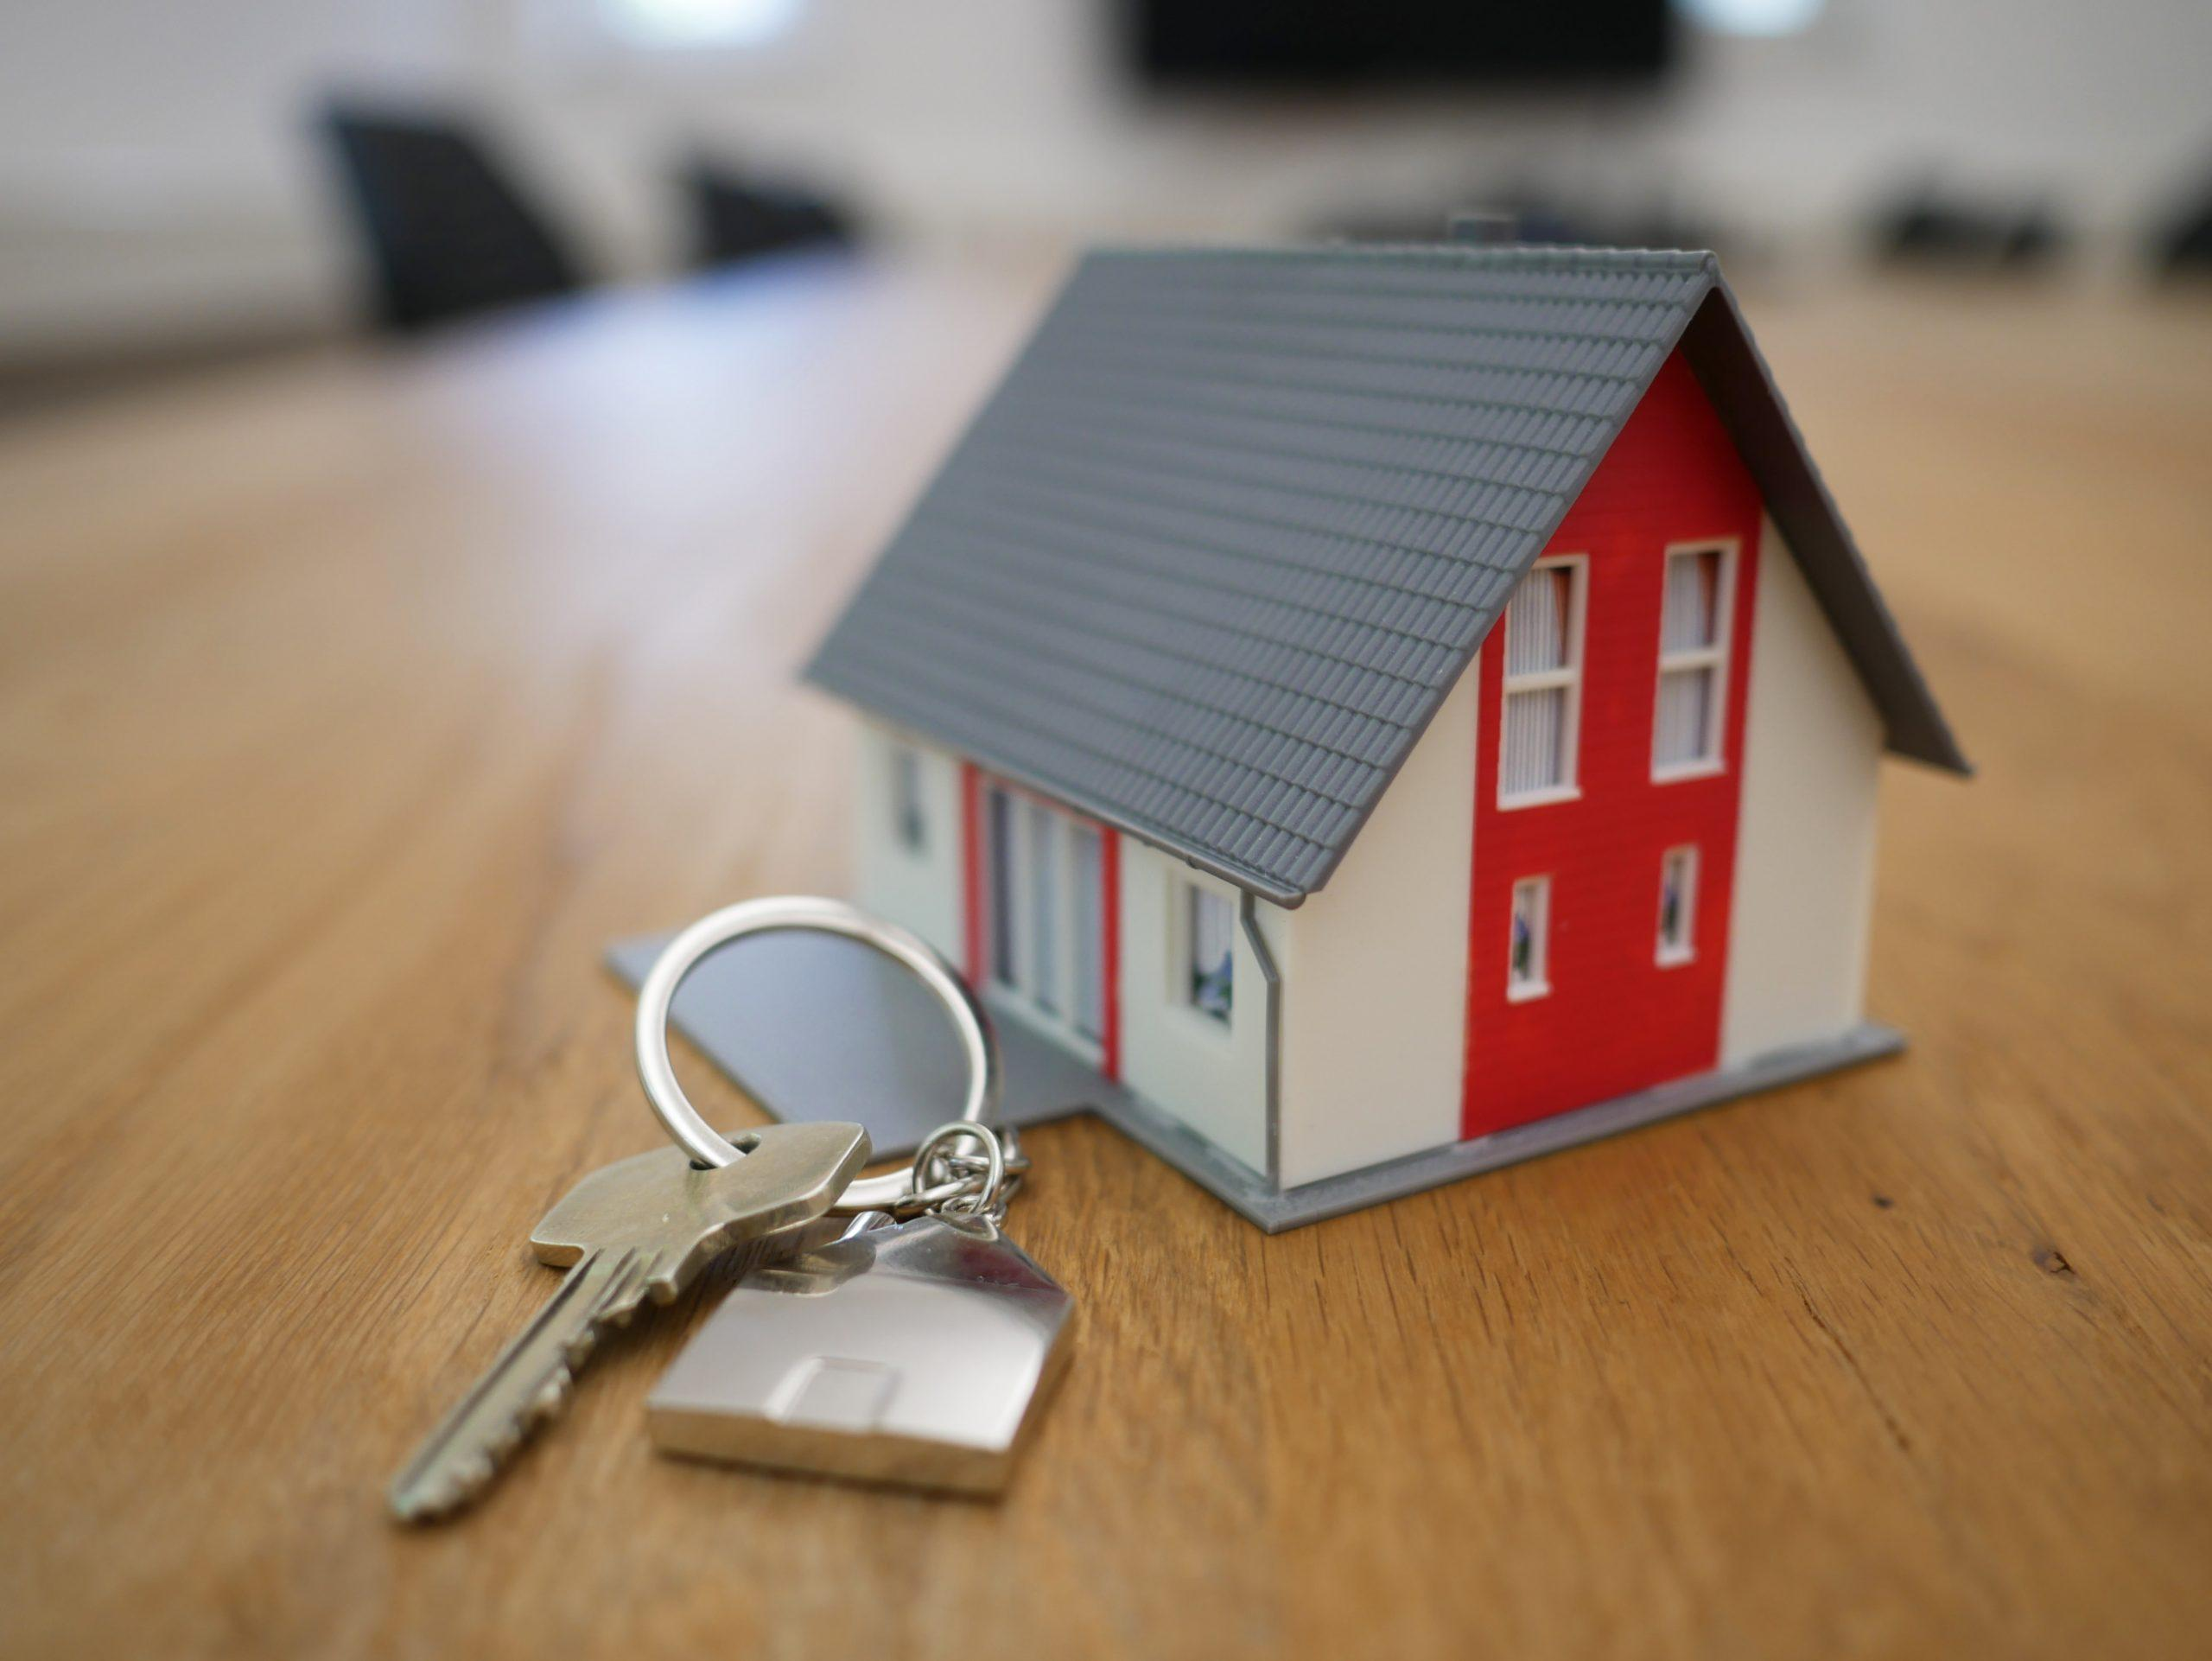 Key next to a toy model house